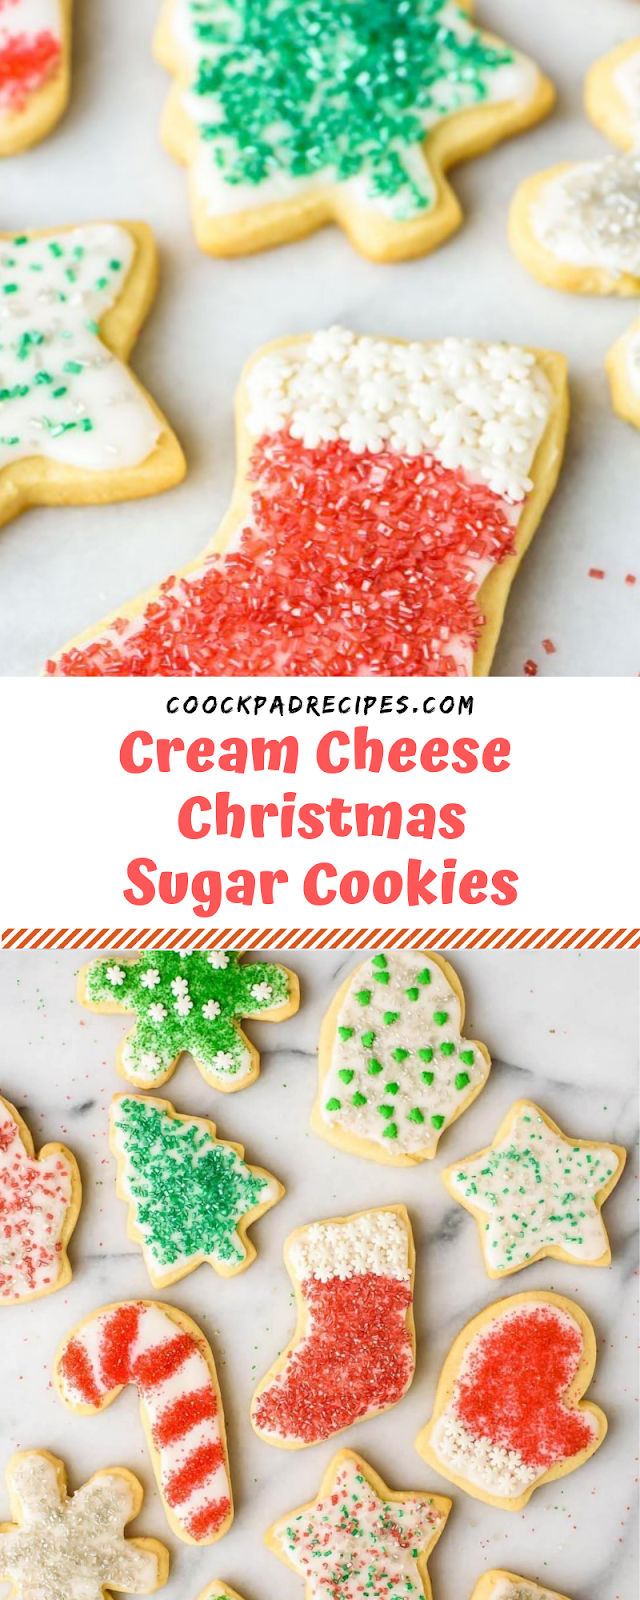 Cream Cheese Christmas Sugar Cookies  # Christmas #Cookies